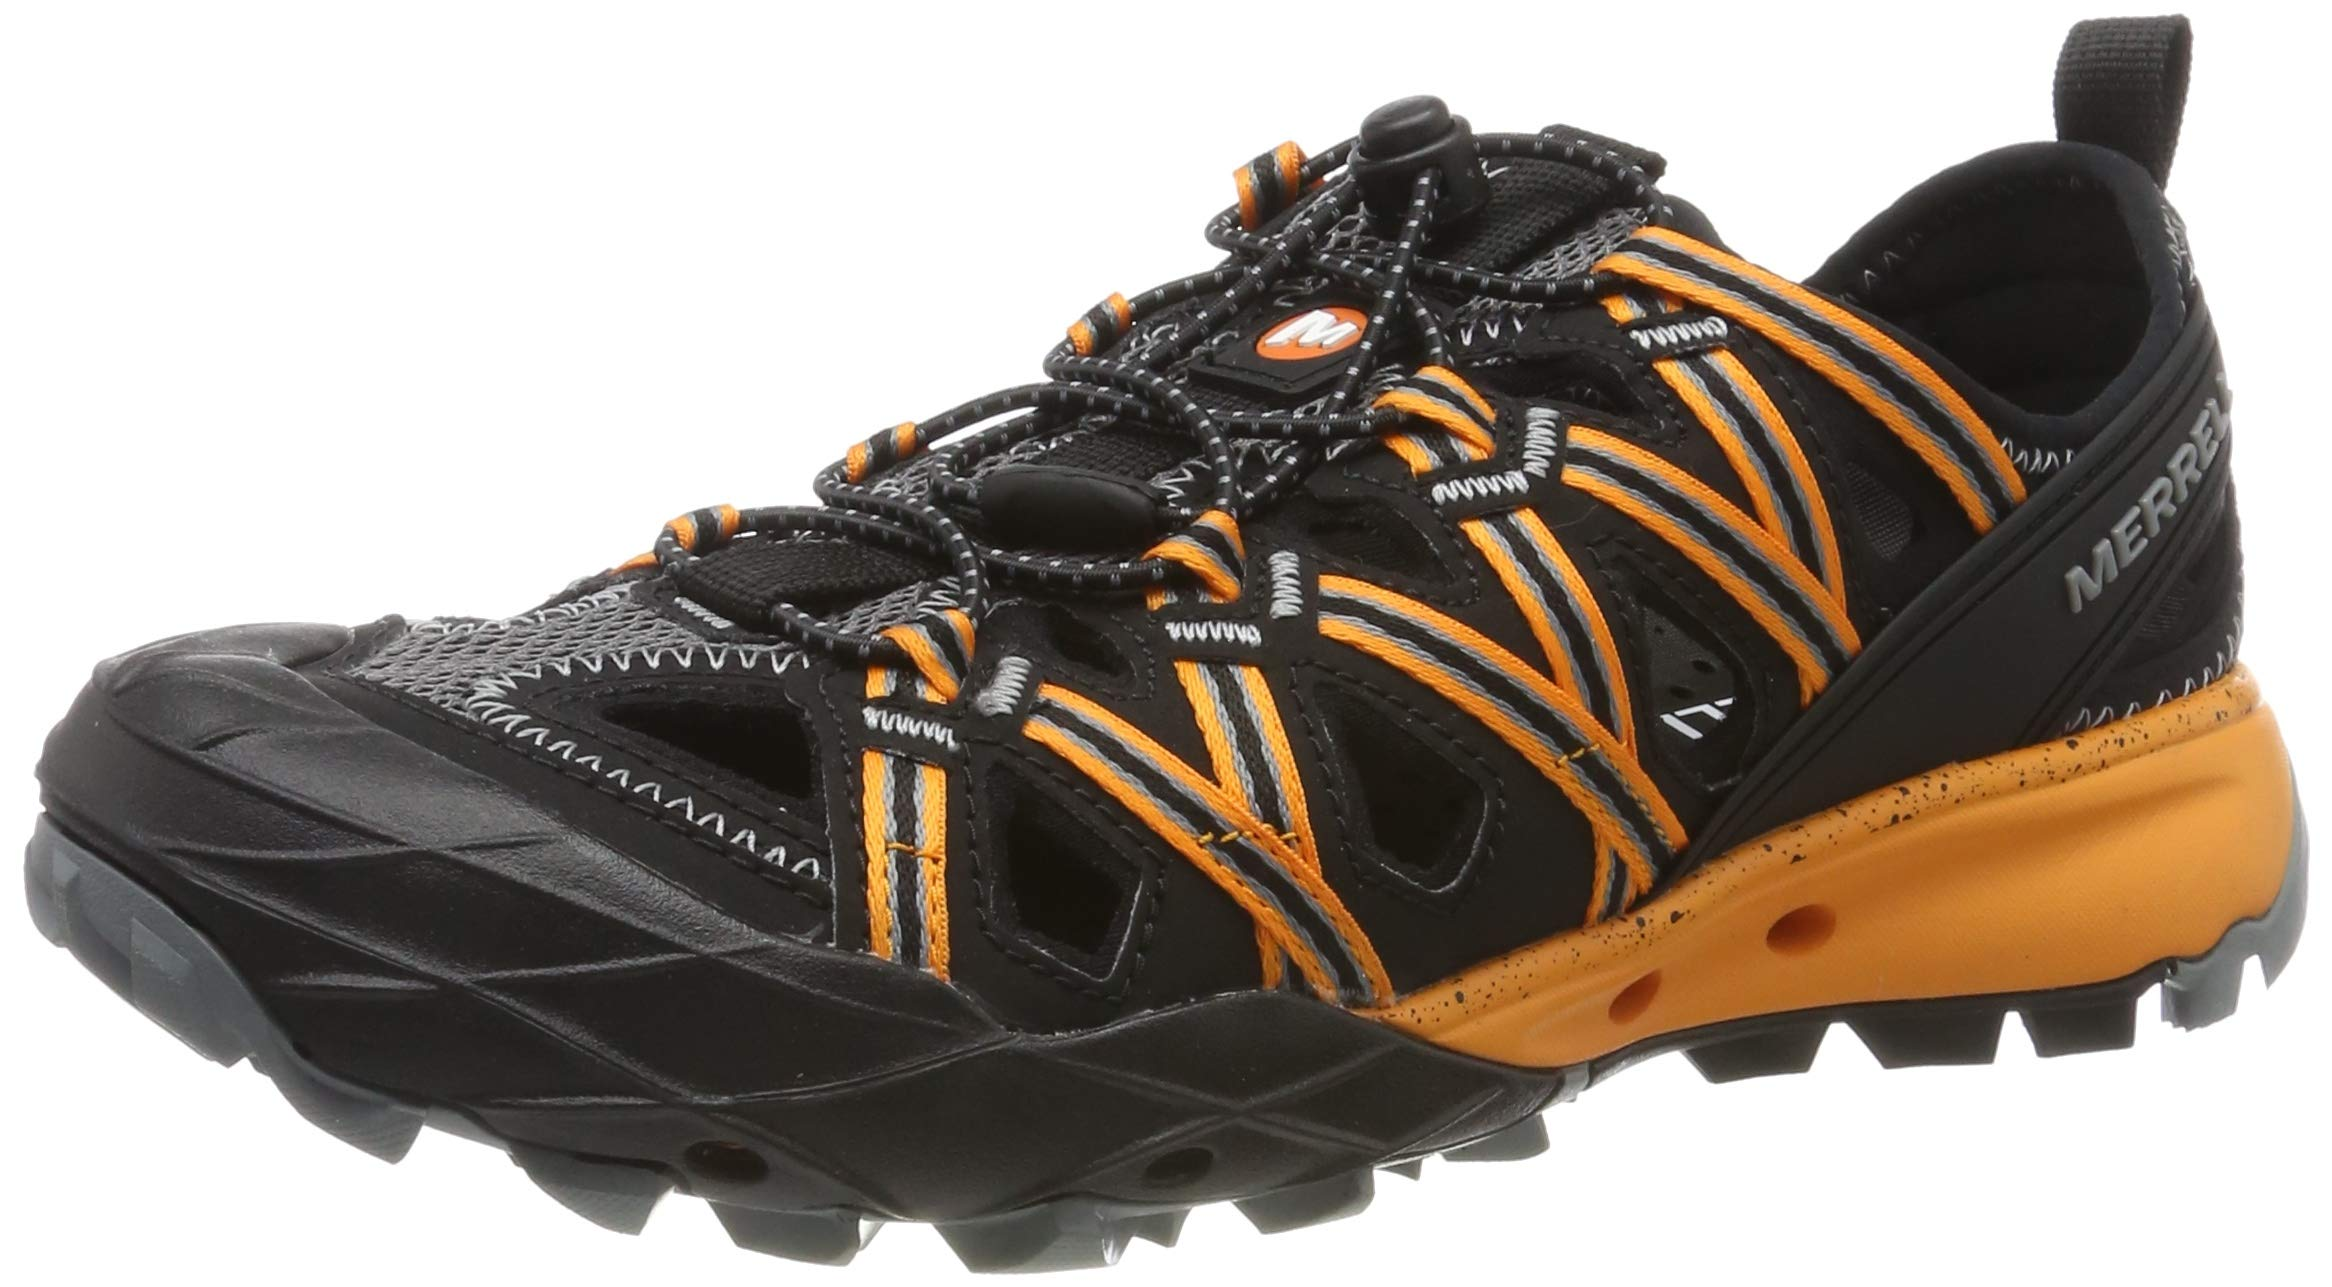 Merrell Men's Choprock Water Shoes, Black Flame Orange, 6.5 (40 EU)